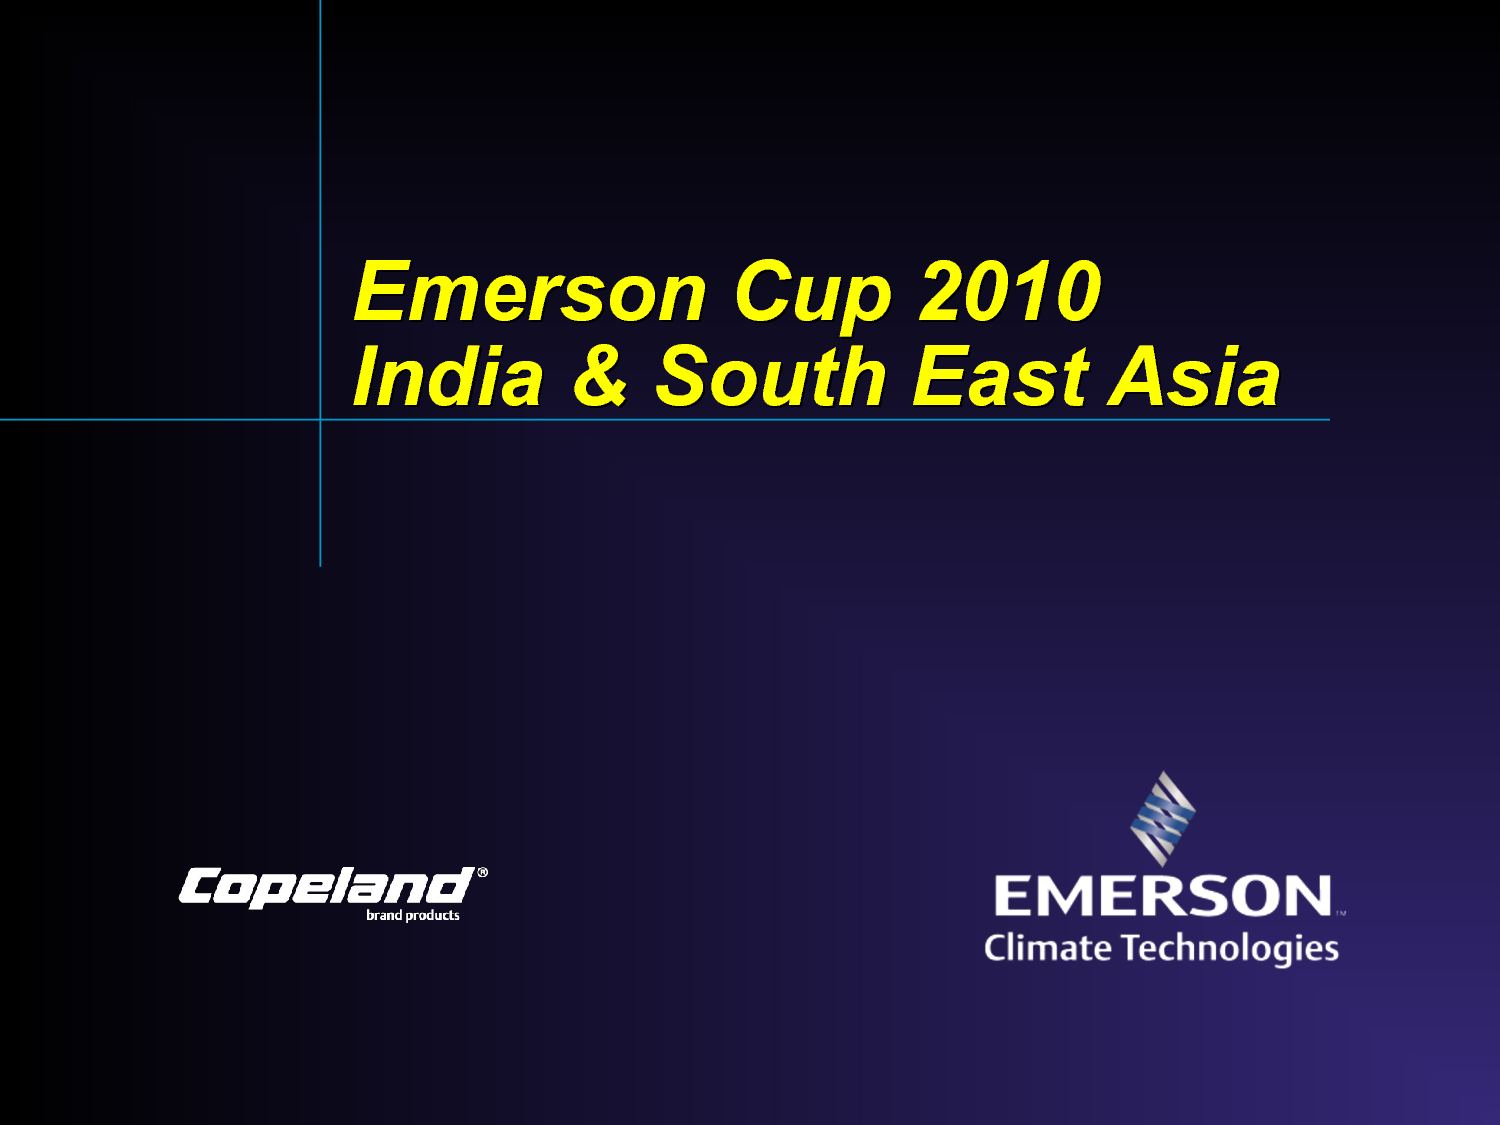 Calaméo - What is Emerson Cup?